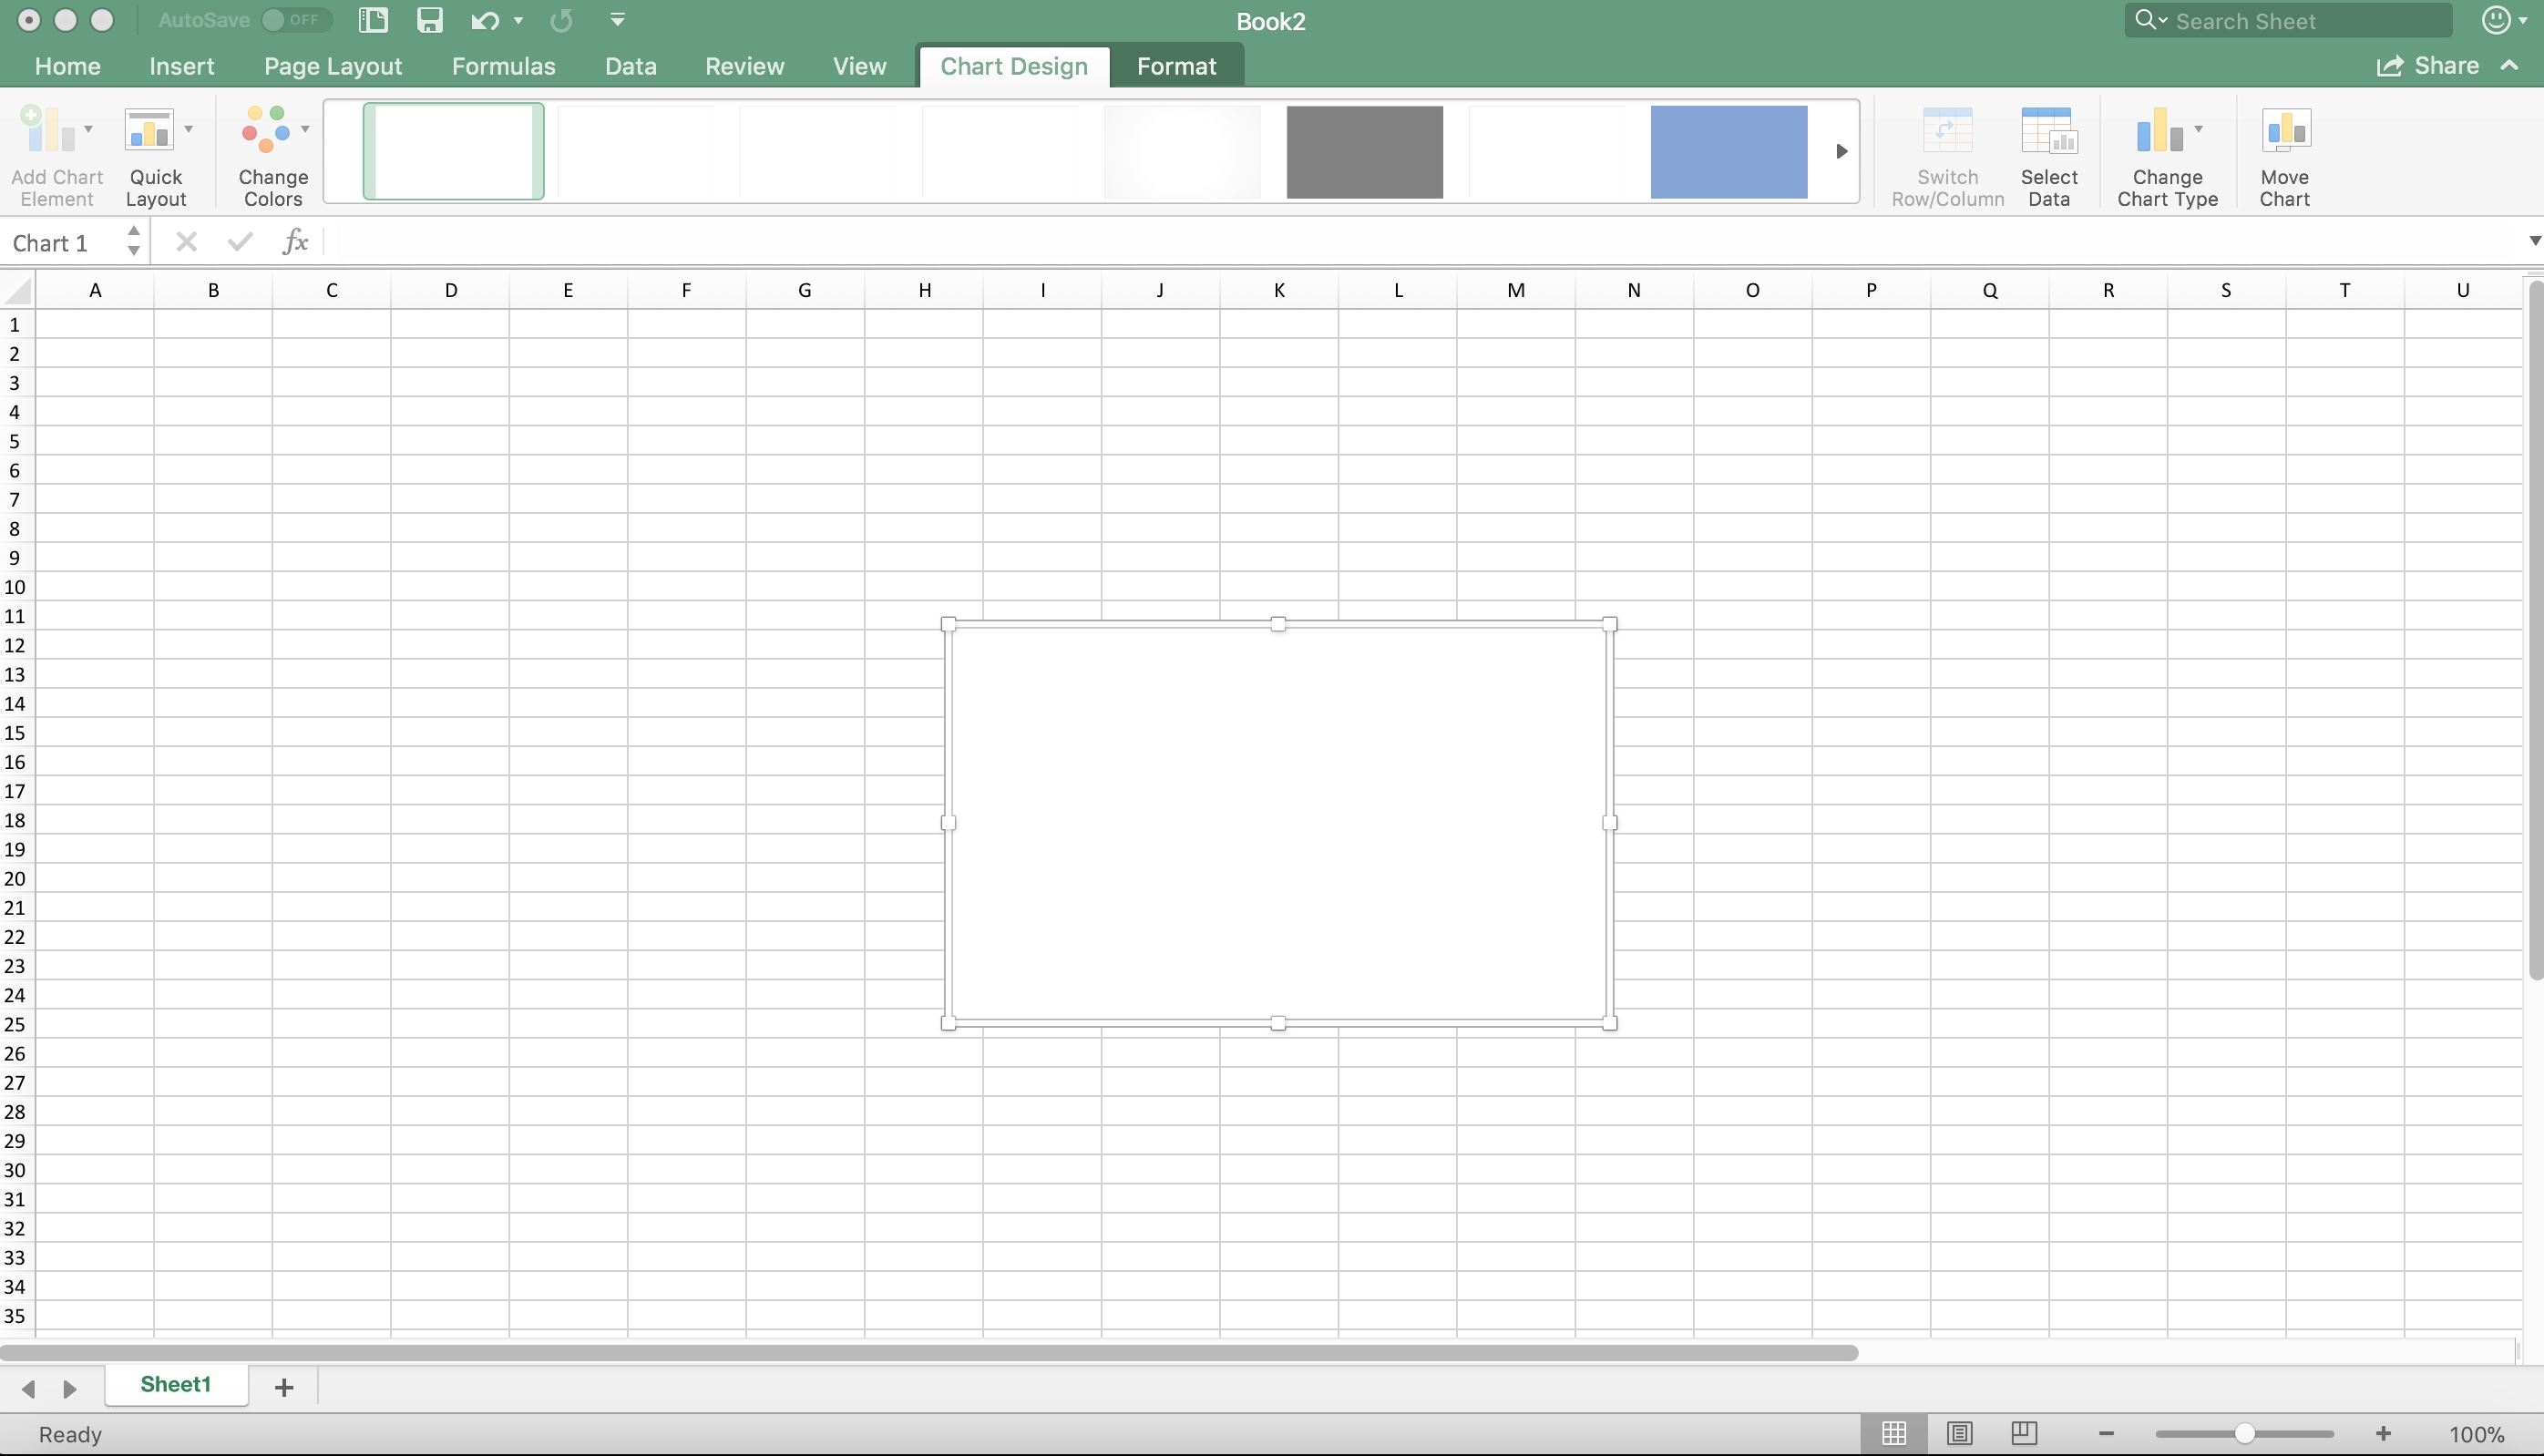 Excel It Just Appears As A Blank White Square In The Middle